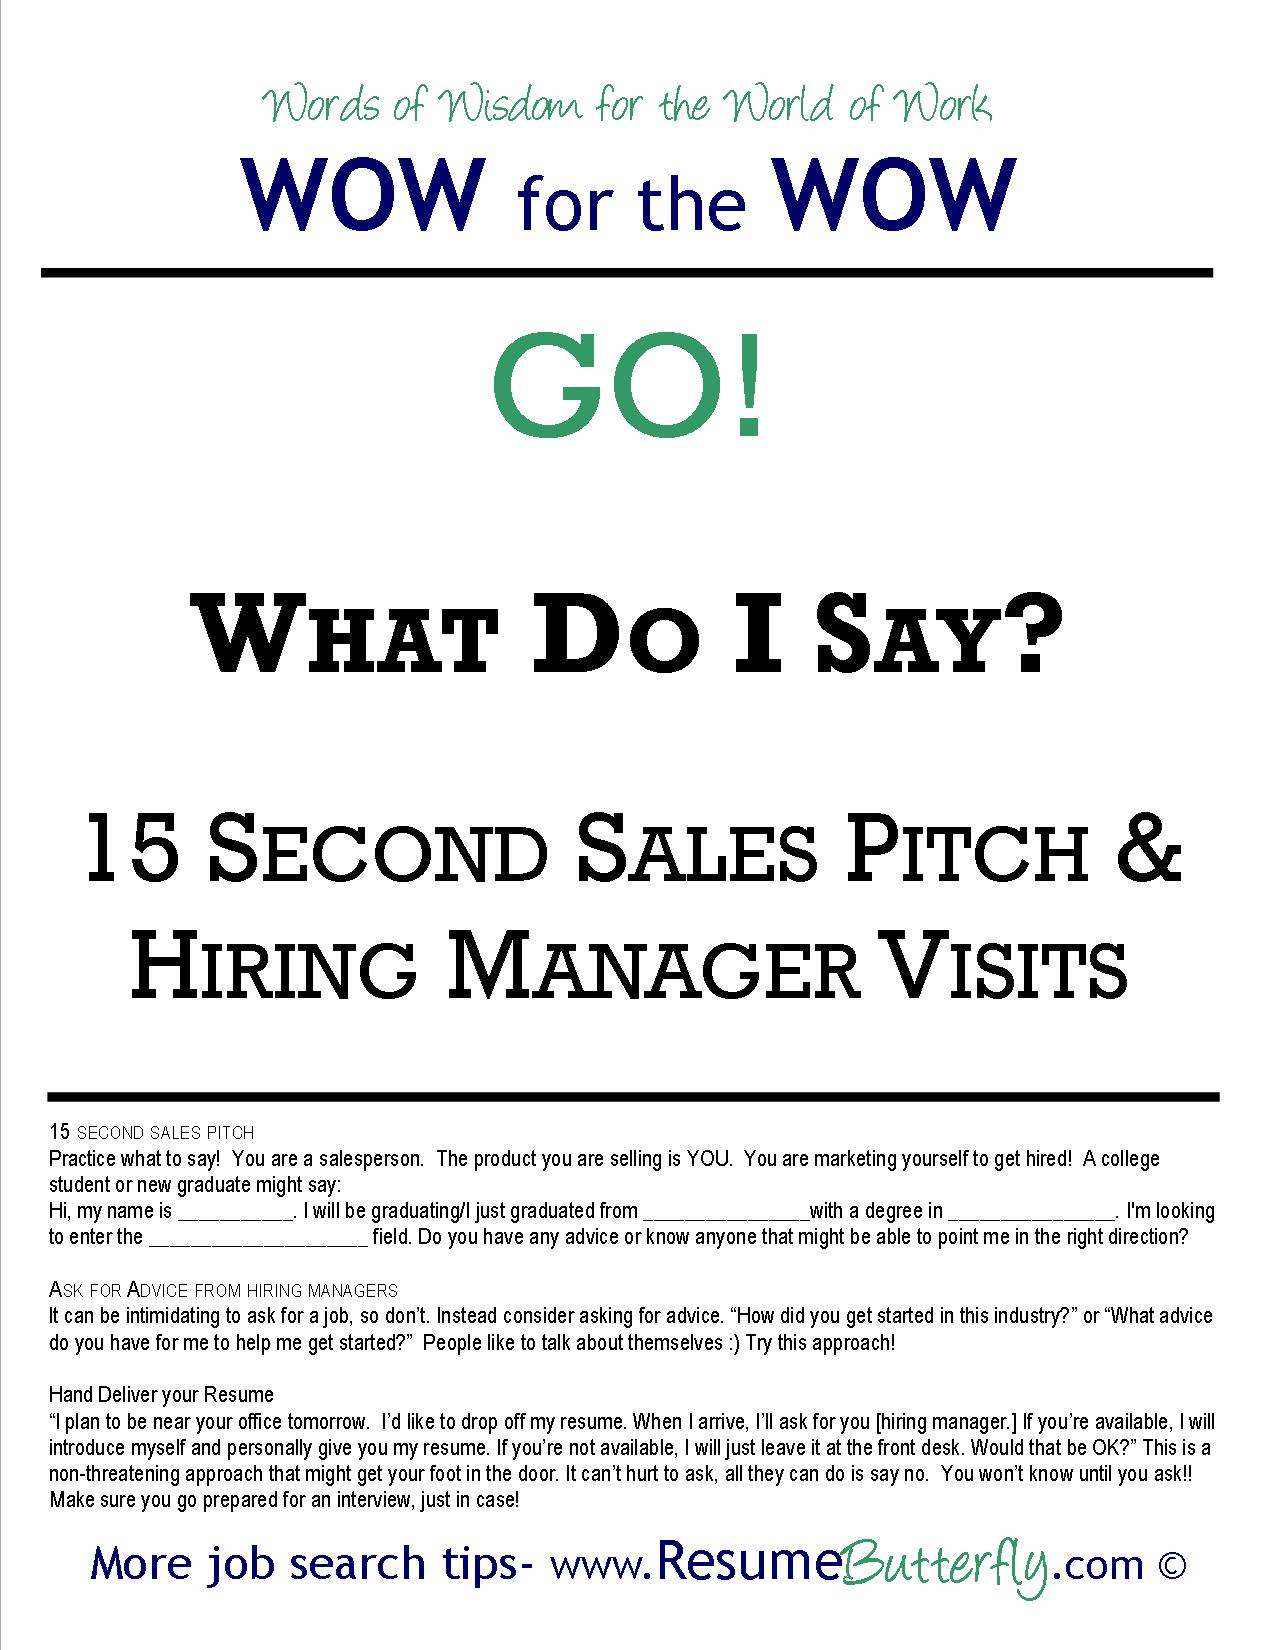 wow for the wow - job search skills - resume butterfly - go - 15 second sales pitch